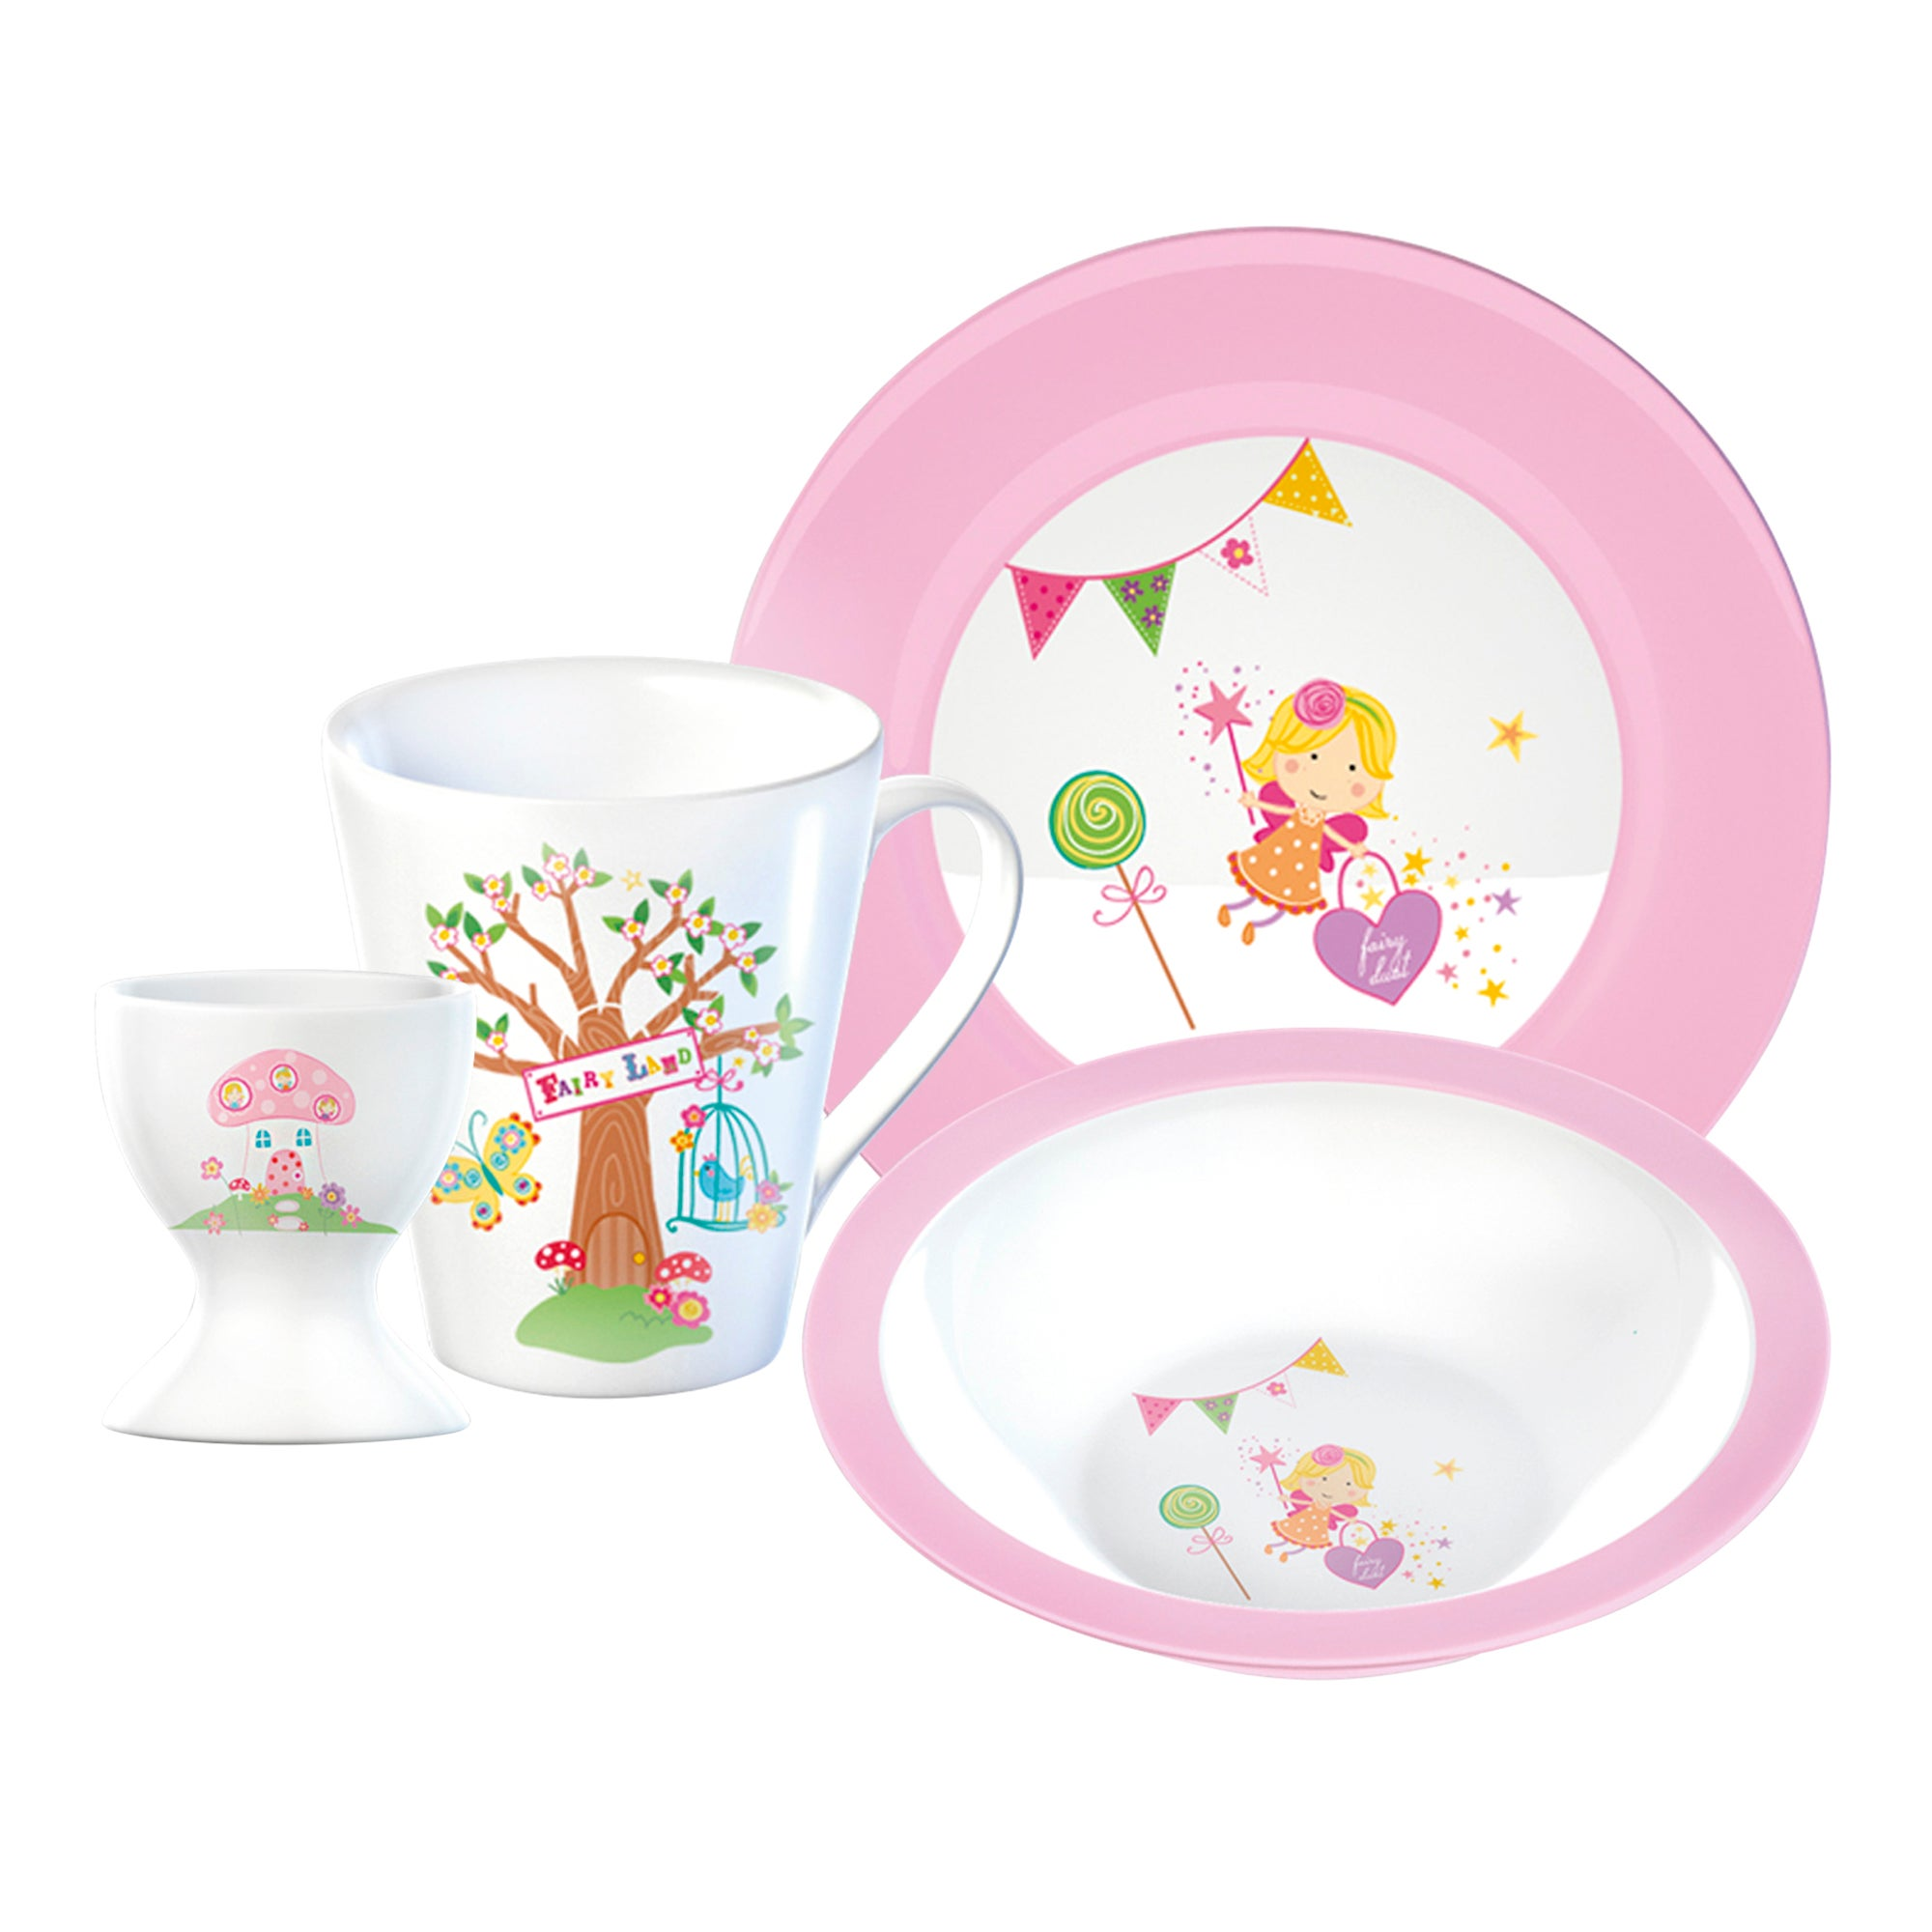 Kids Fairies 4 Piece Breakfast Set